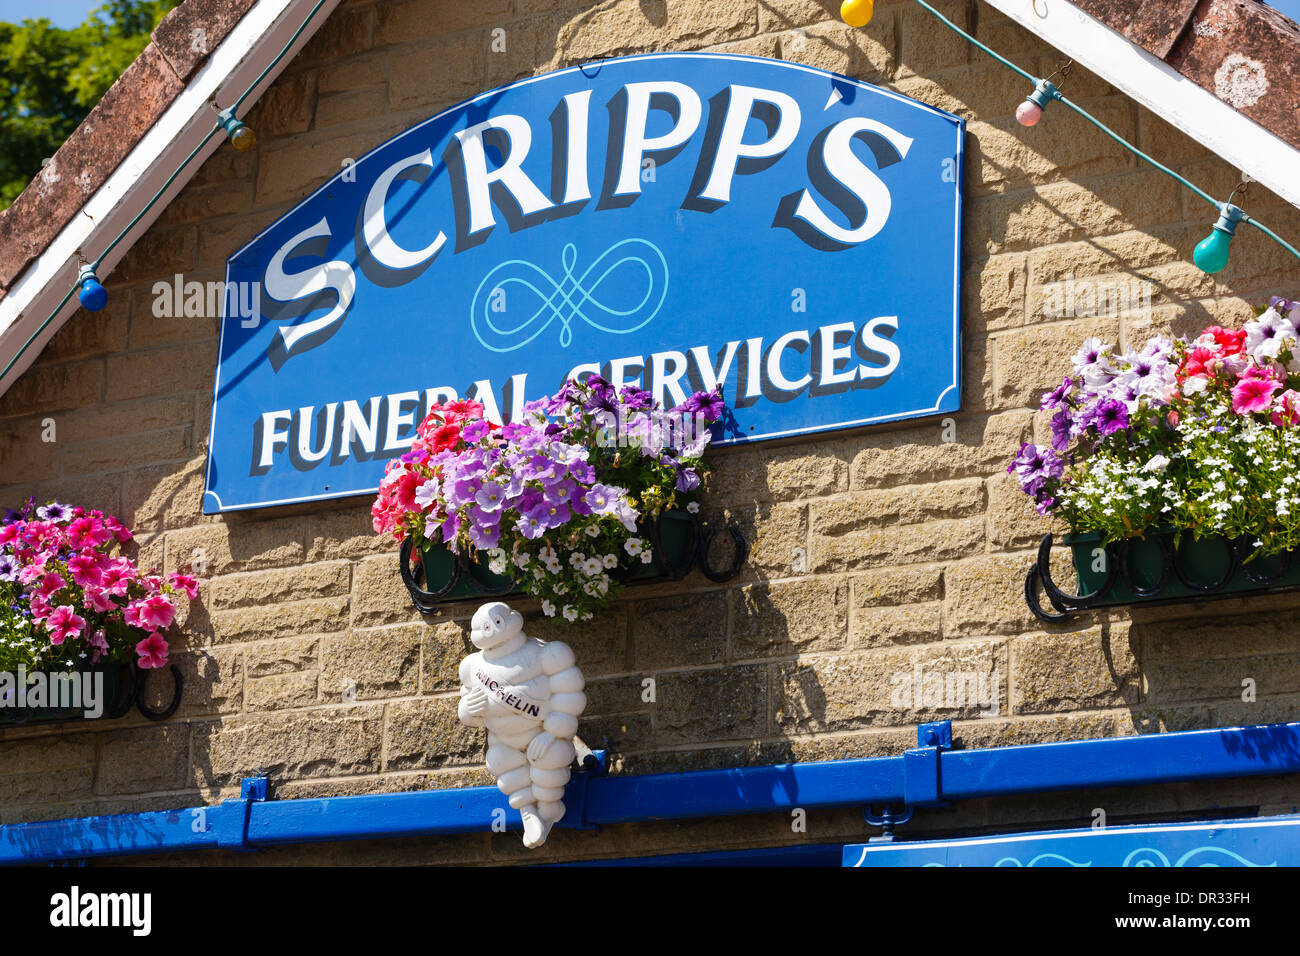 Scripps Funeral Services Goathland Scarborough North Yorkshire Stock